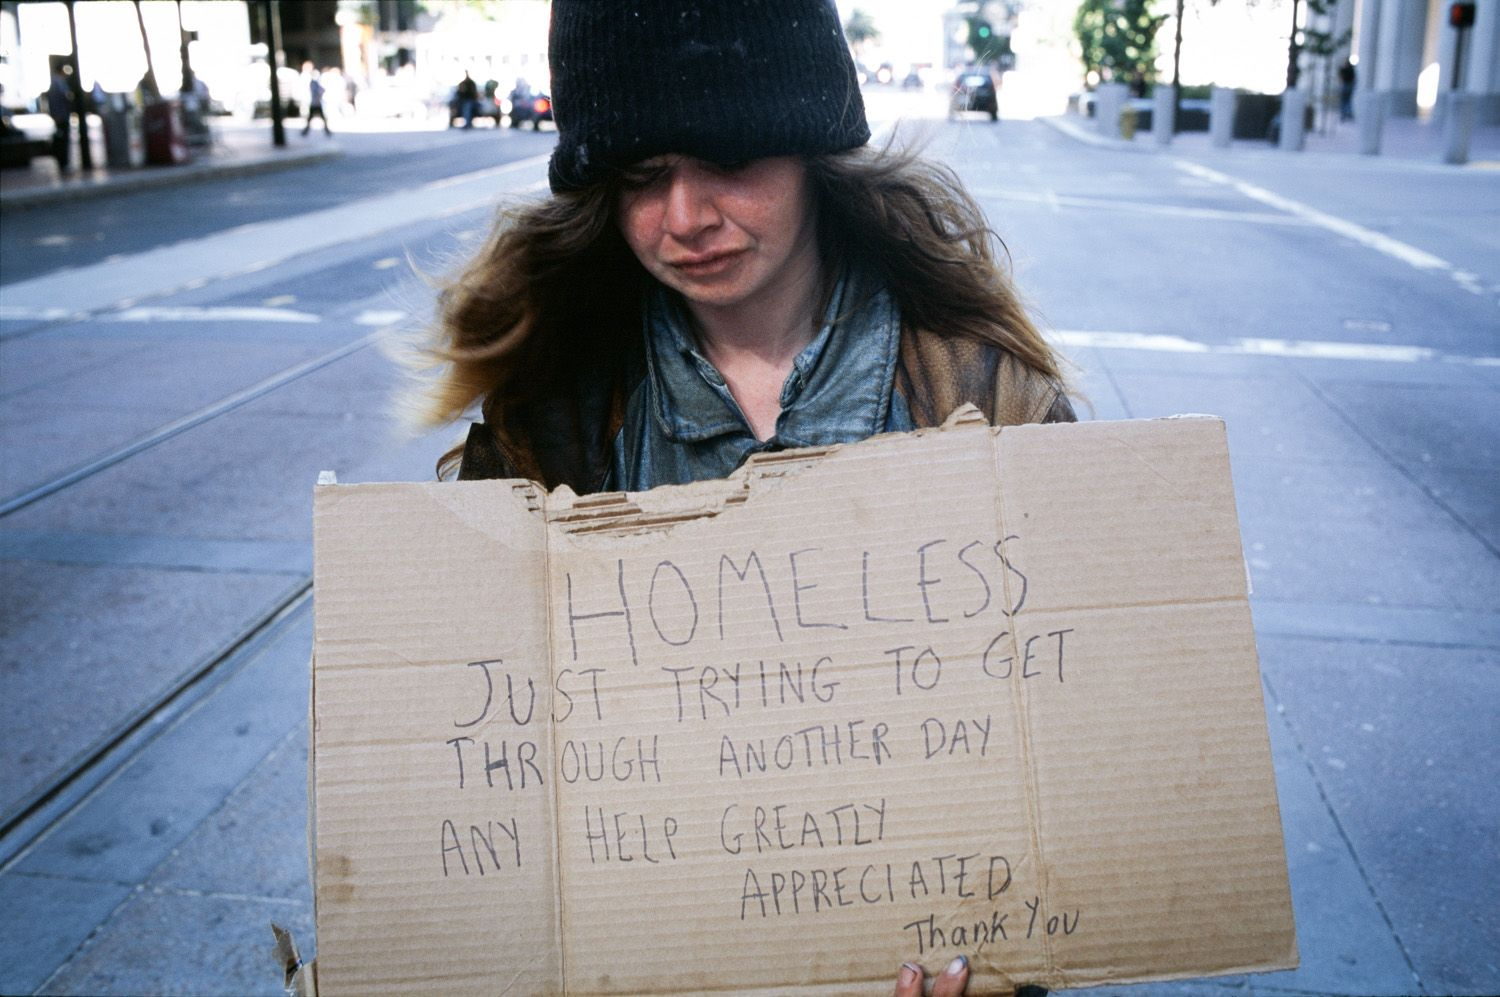 Being homless in the UK sucks, what can I do now?